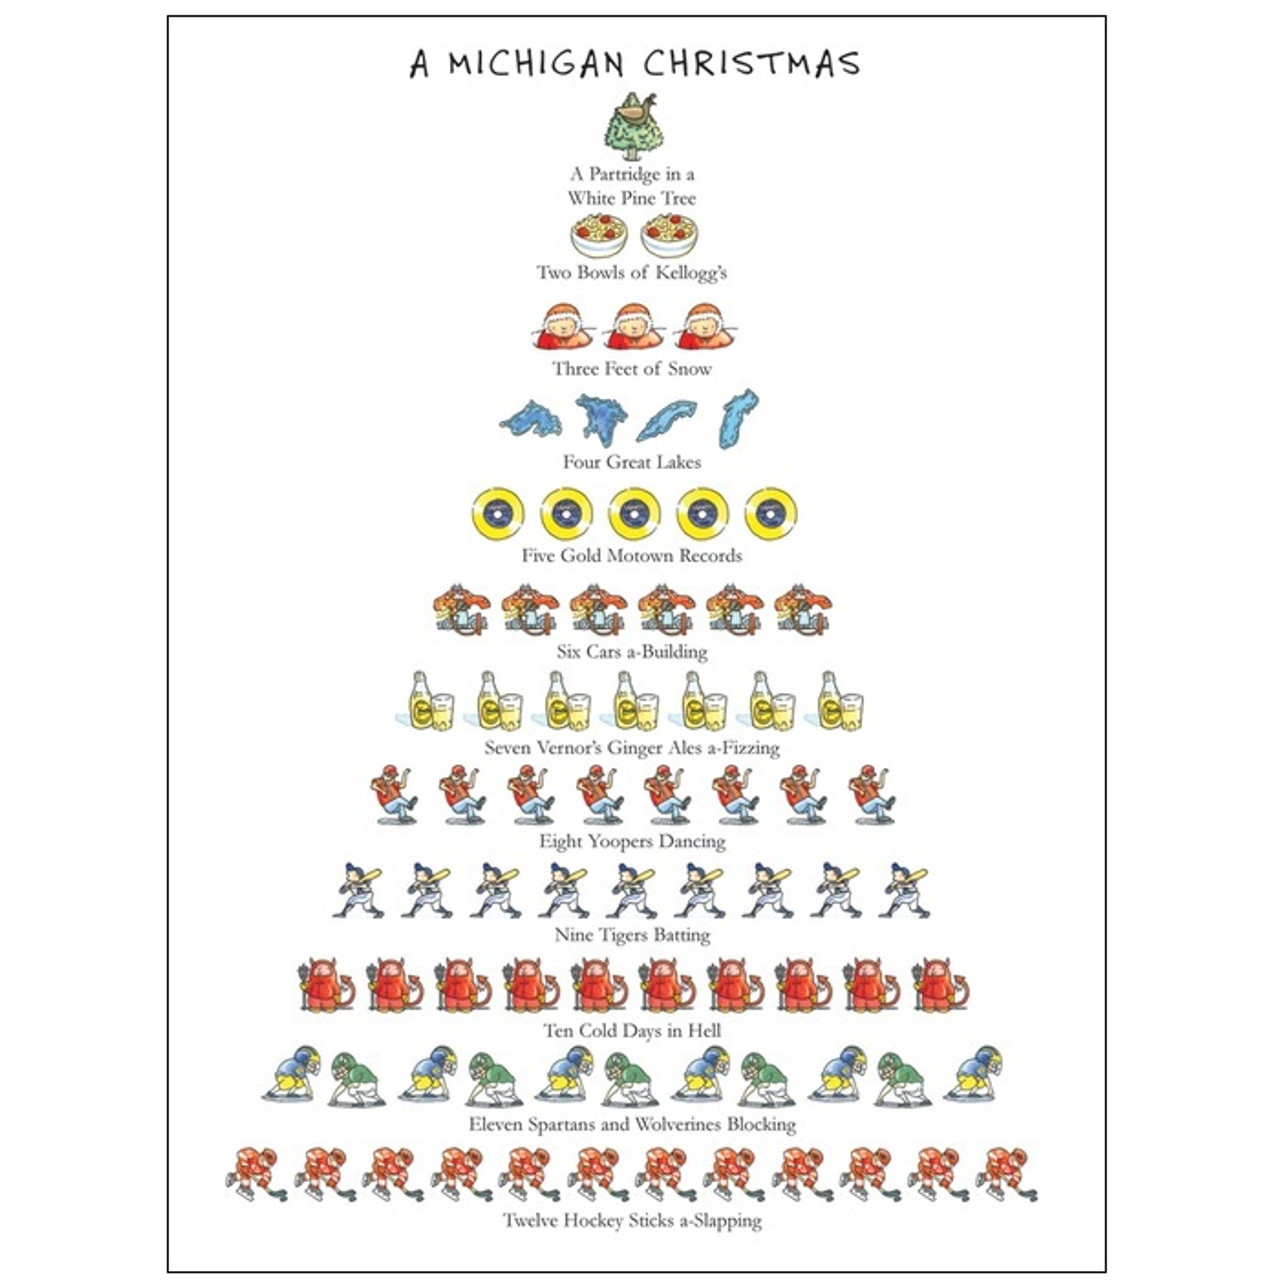 12 Days Of Christmas.Twelve Days Of A Michigan Christmas Holiday Cards